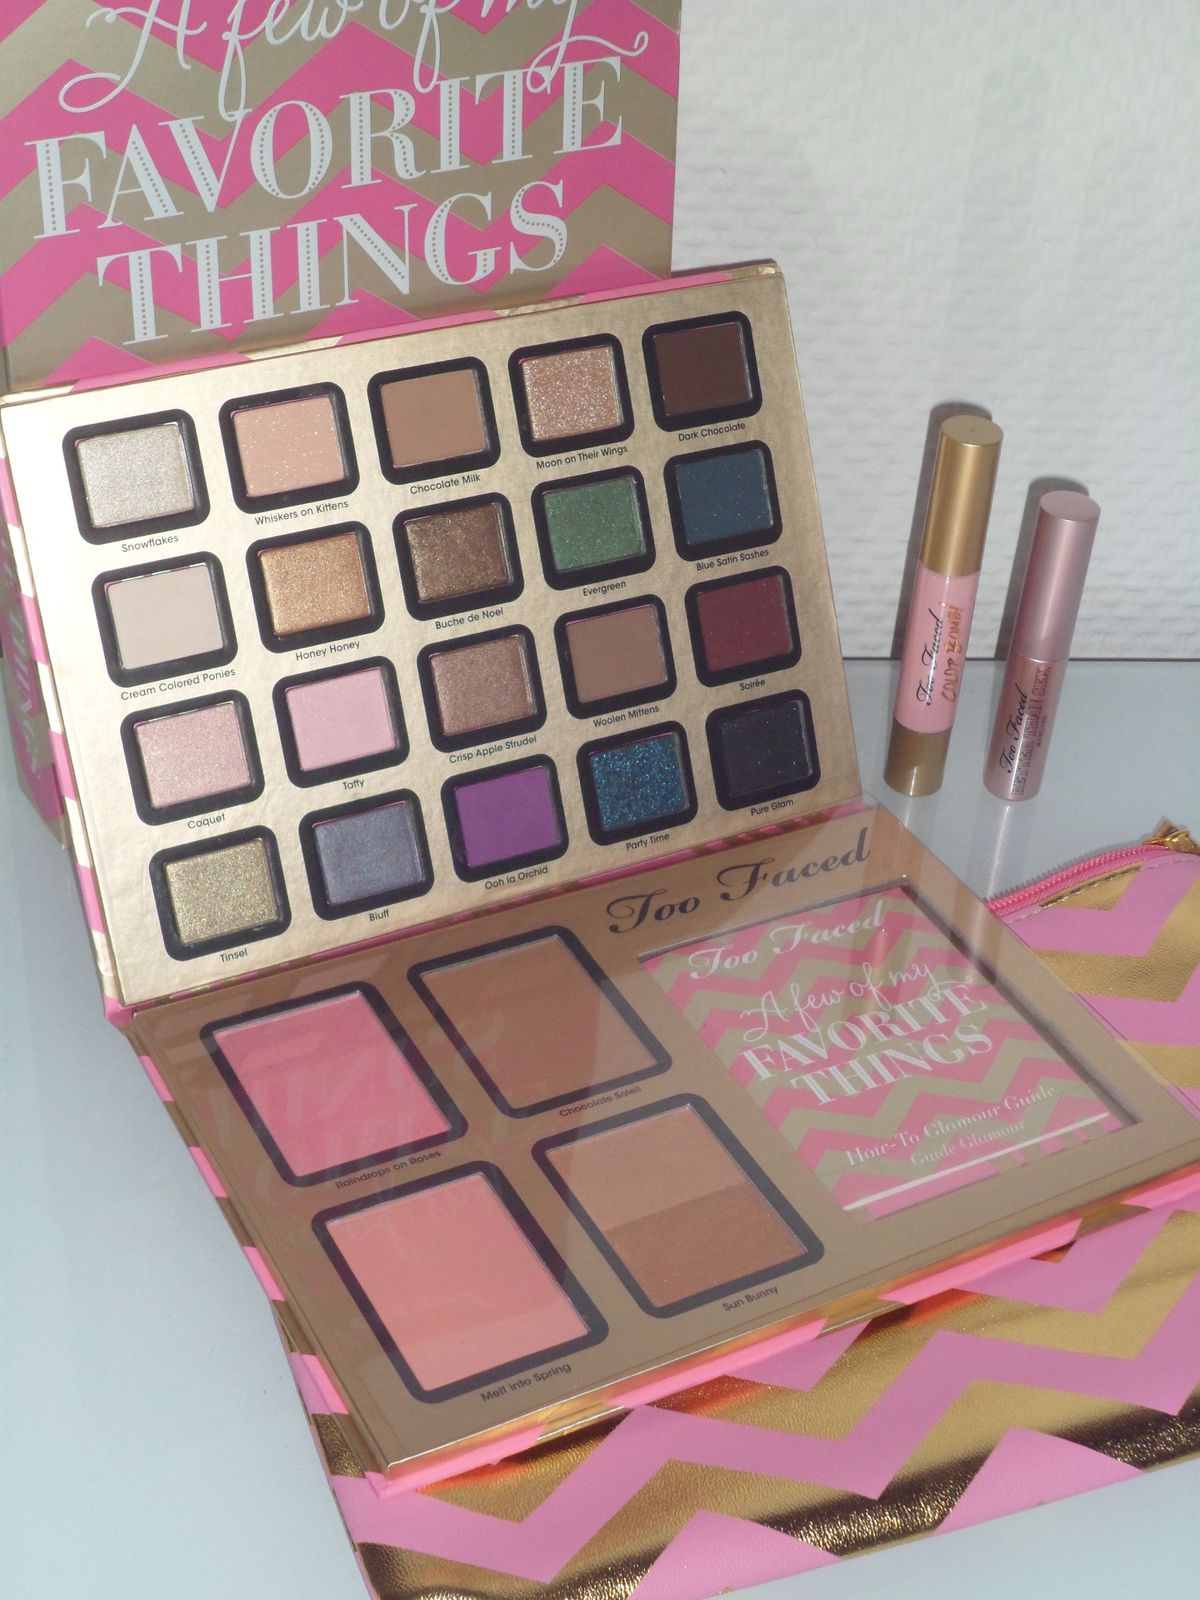 Nouvelle palette de Too Faced : a few of my favorite things